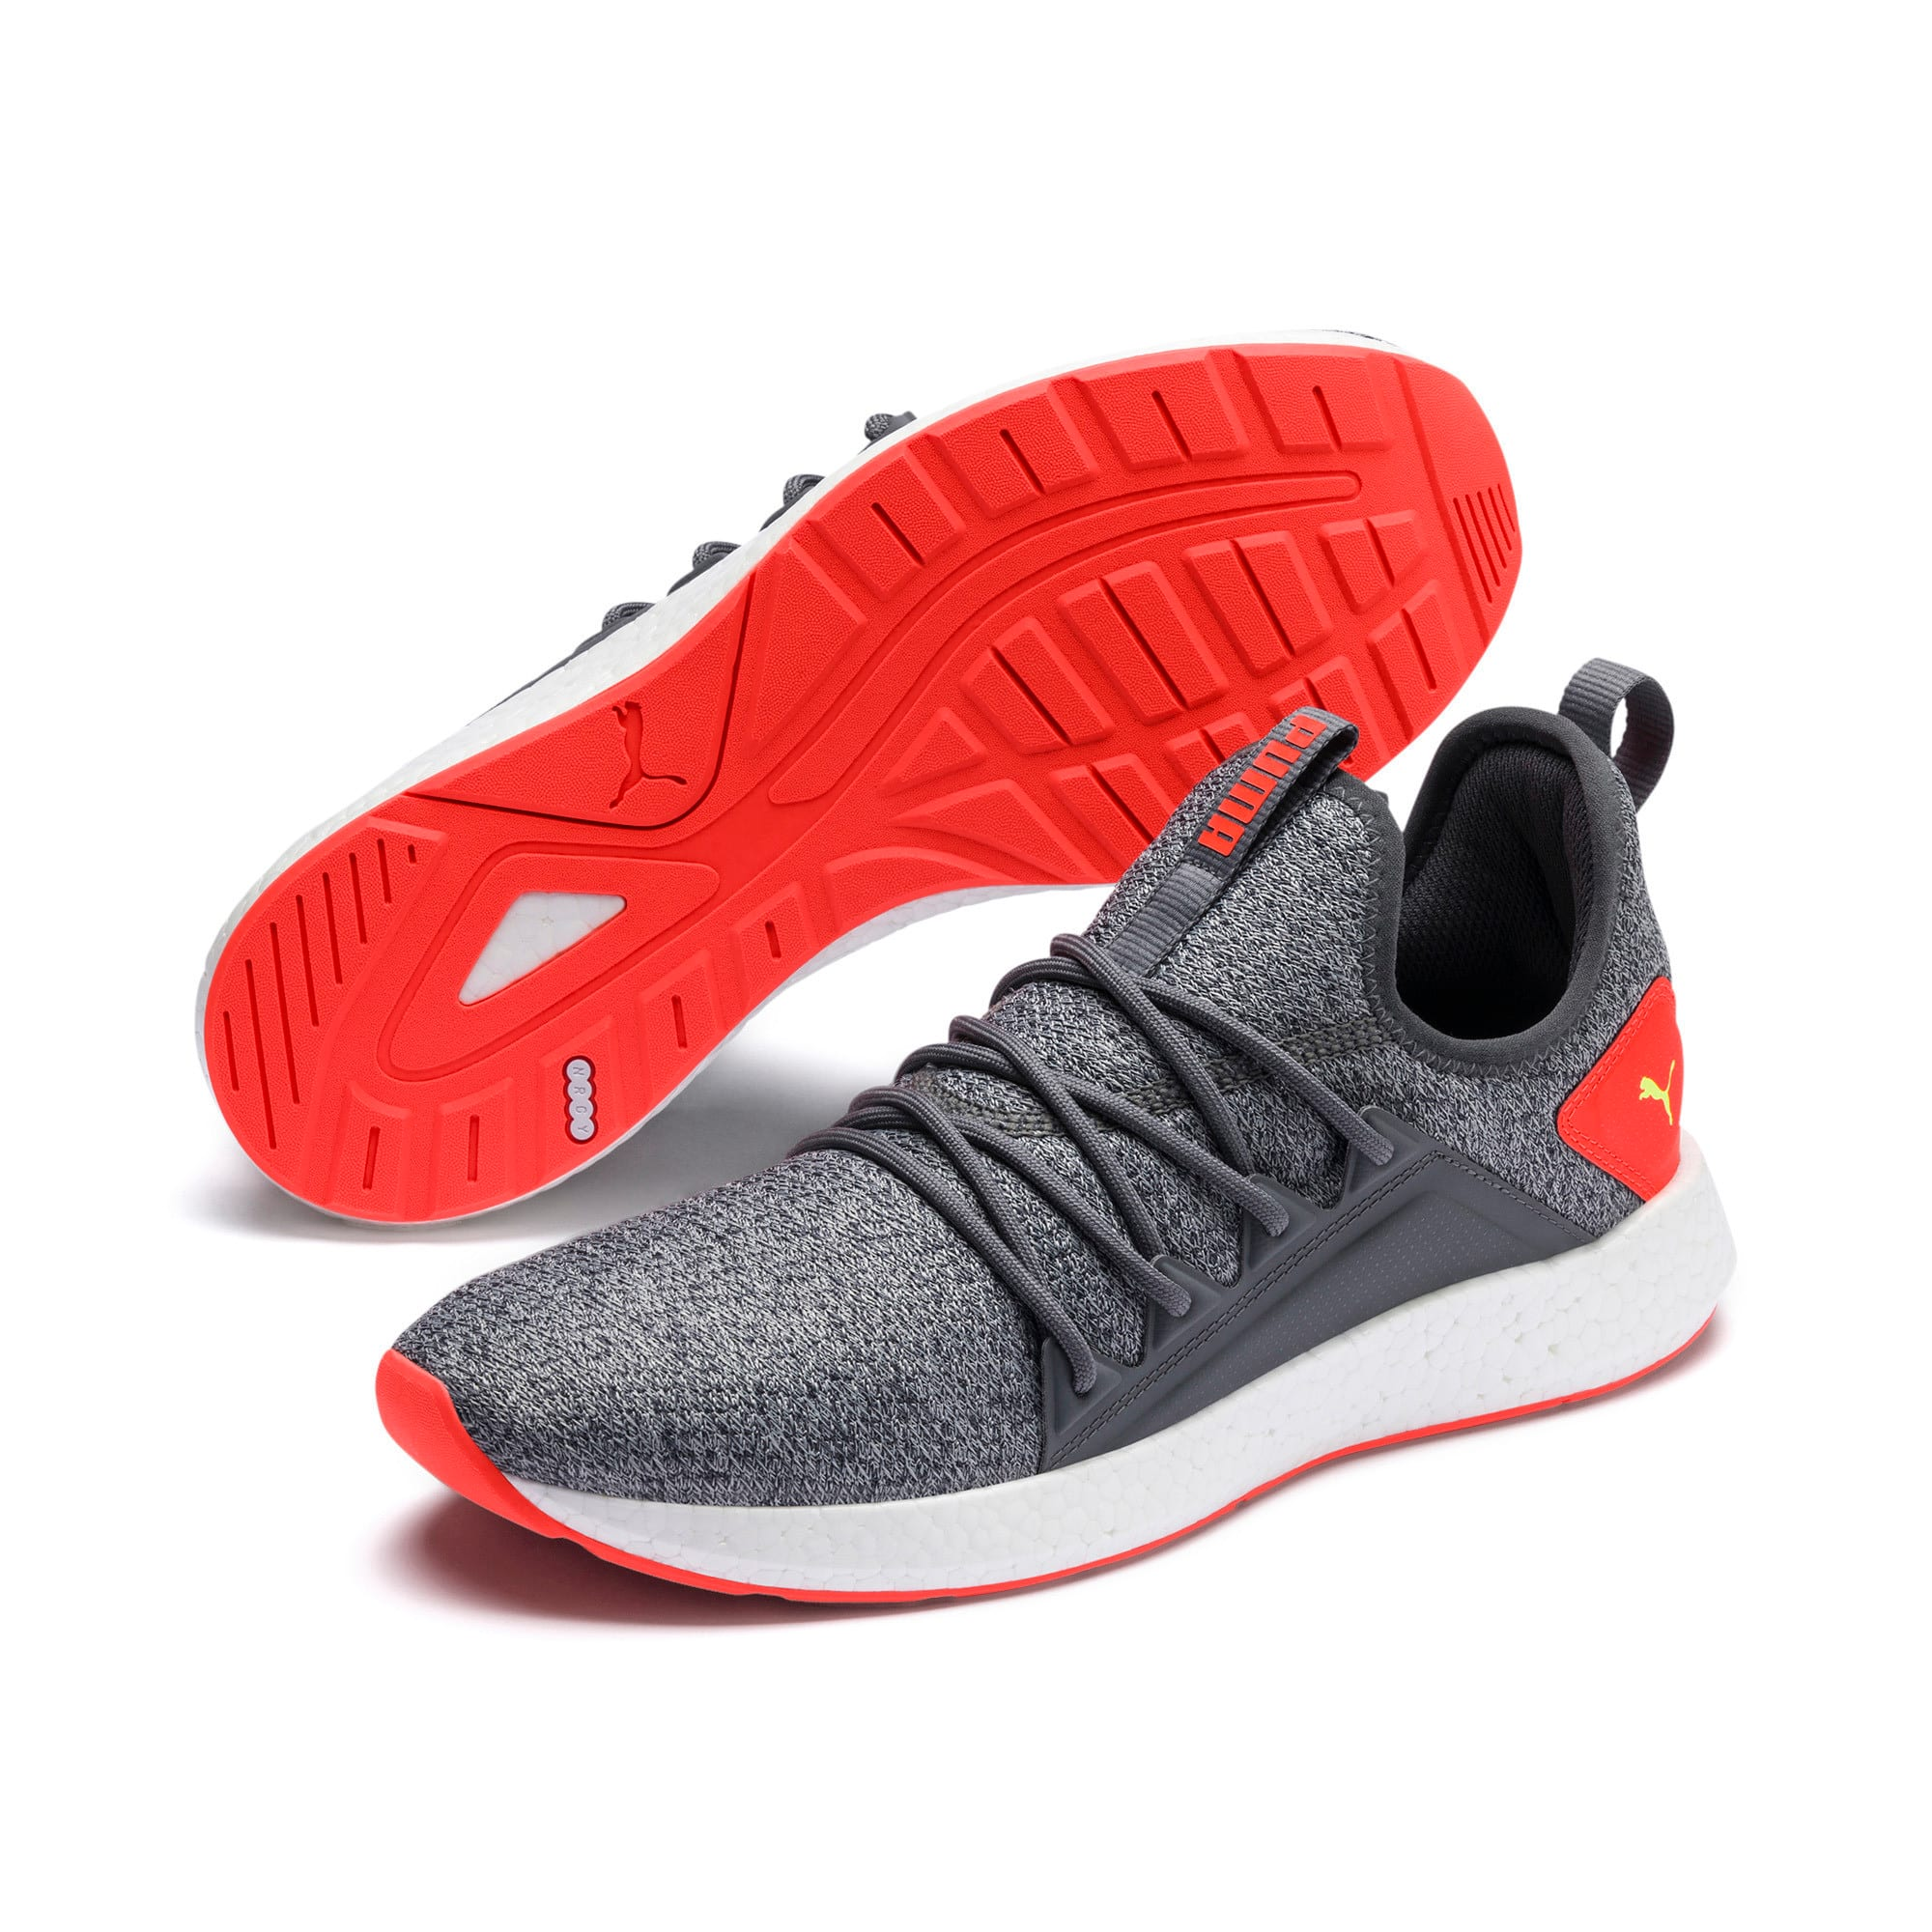 Thumbnail 3 of NRGY Neko Knit Men's Running Shoes, CASTLEROCK-Nrgy Red, medium